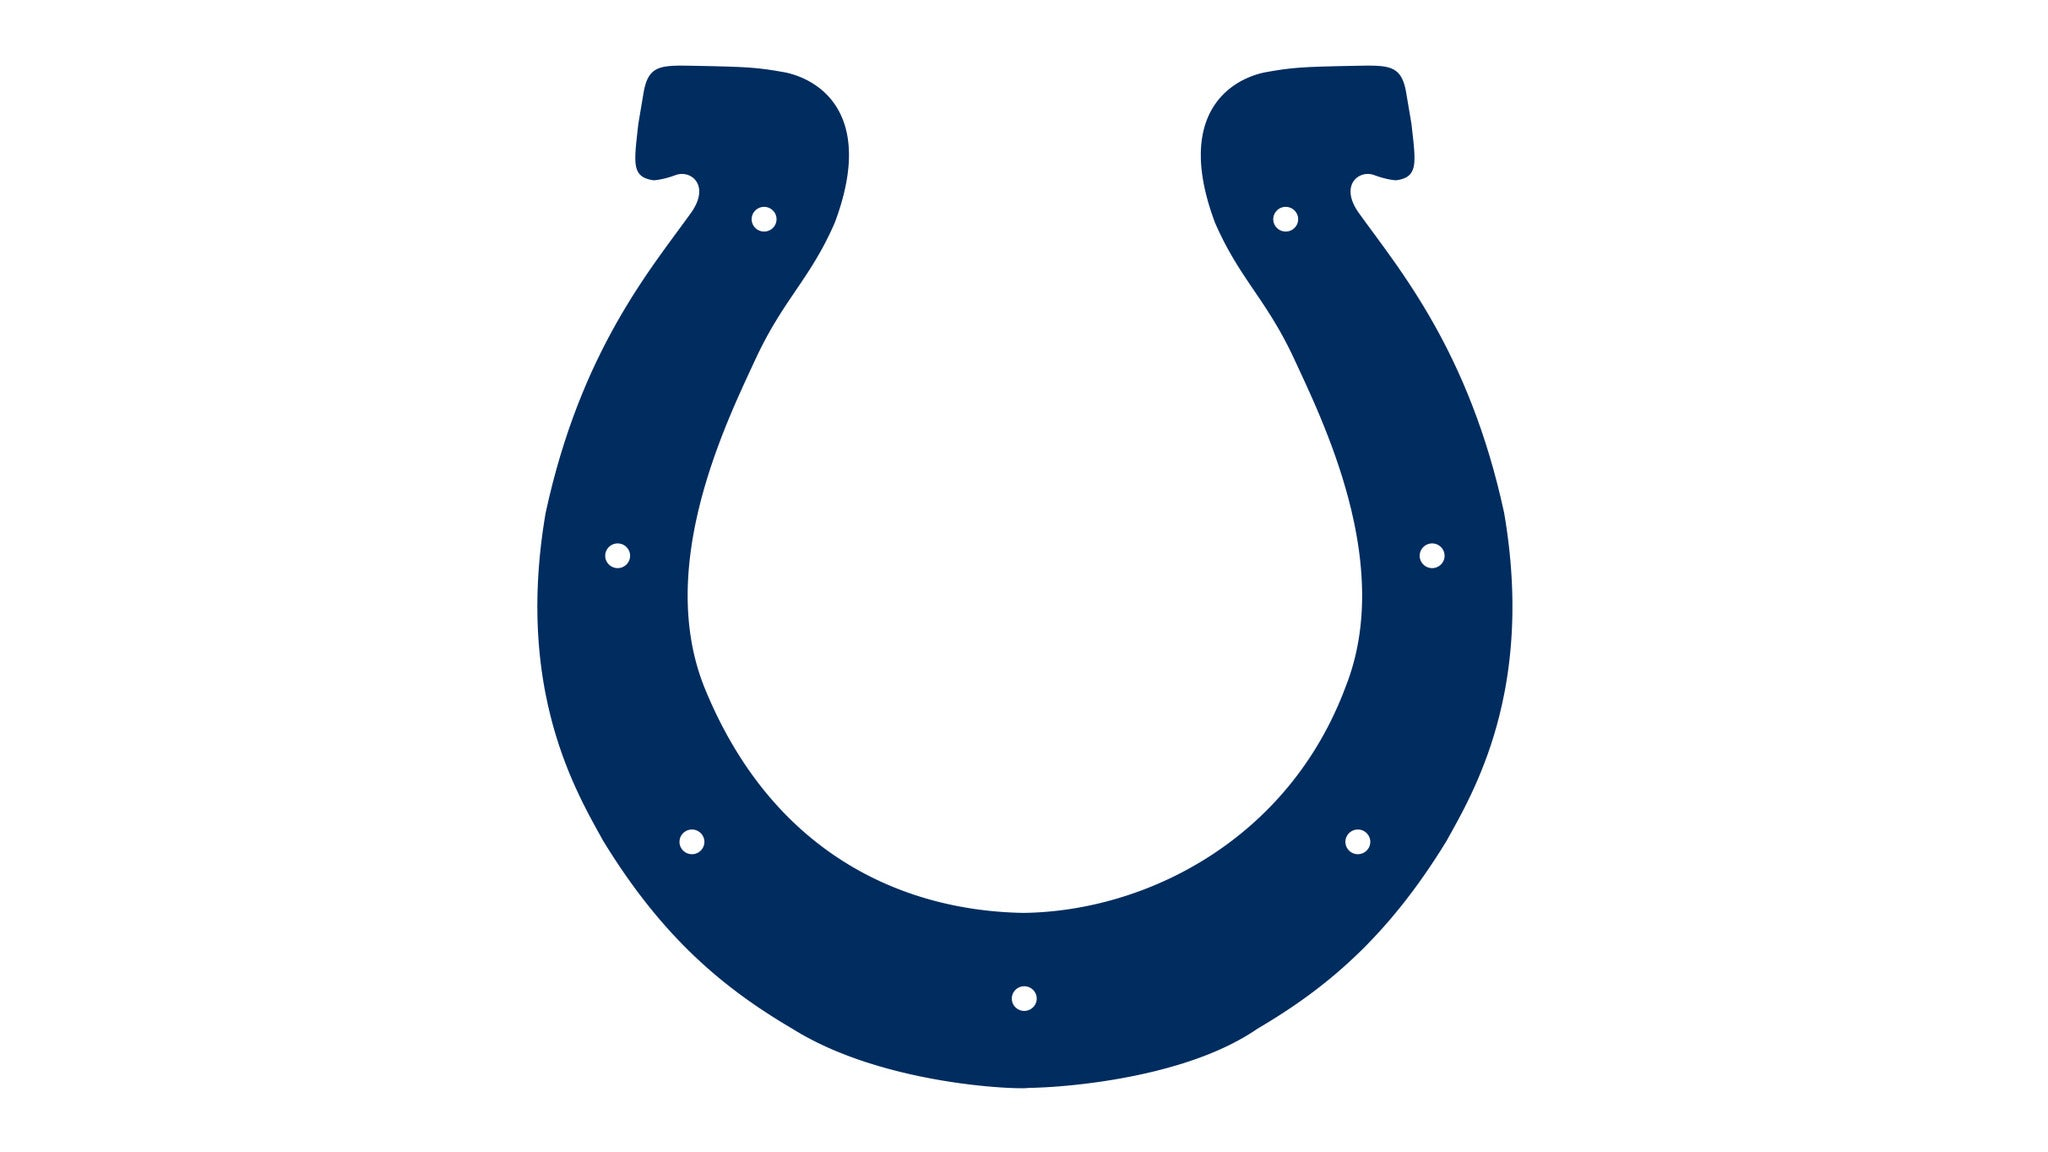 Indianapolis Colts vs. Dallas Cowboys at Lucas Oil Stadium